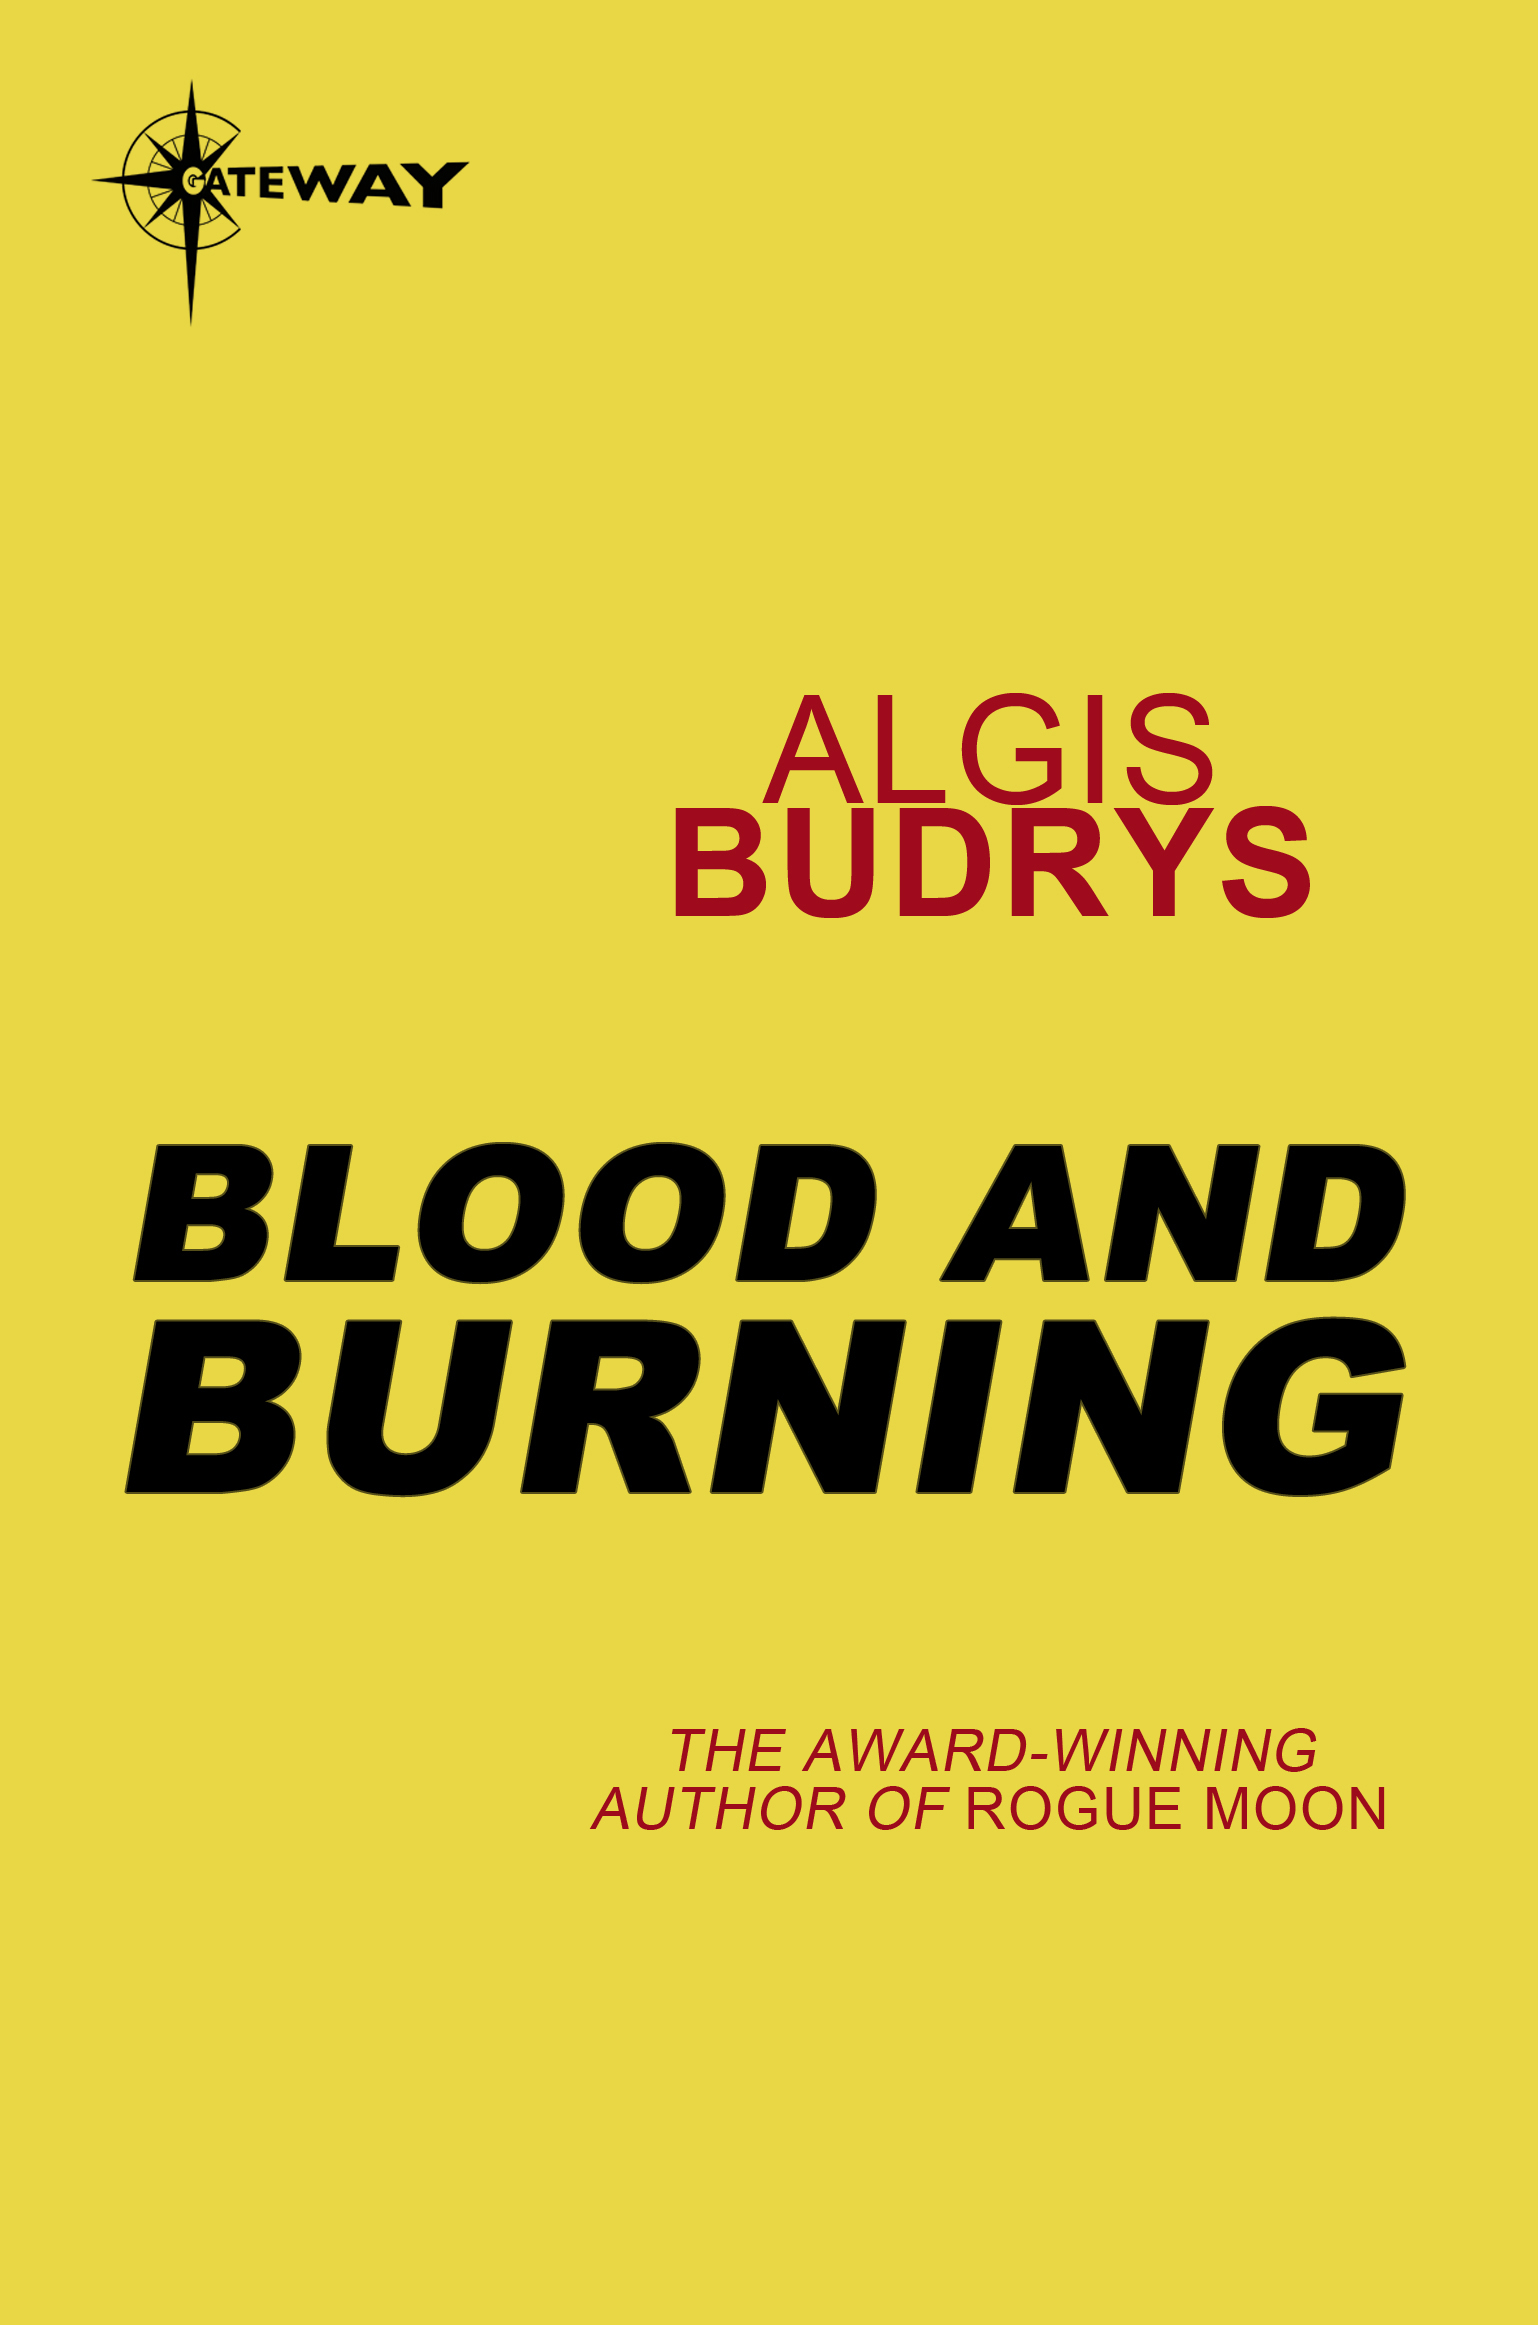 Blood and Burning